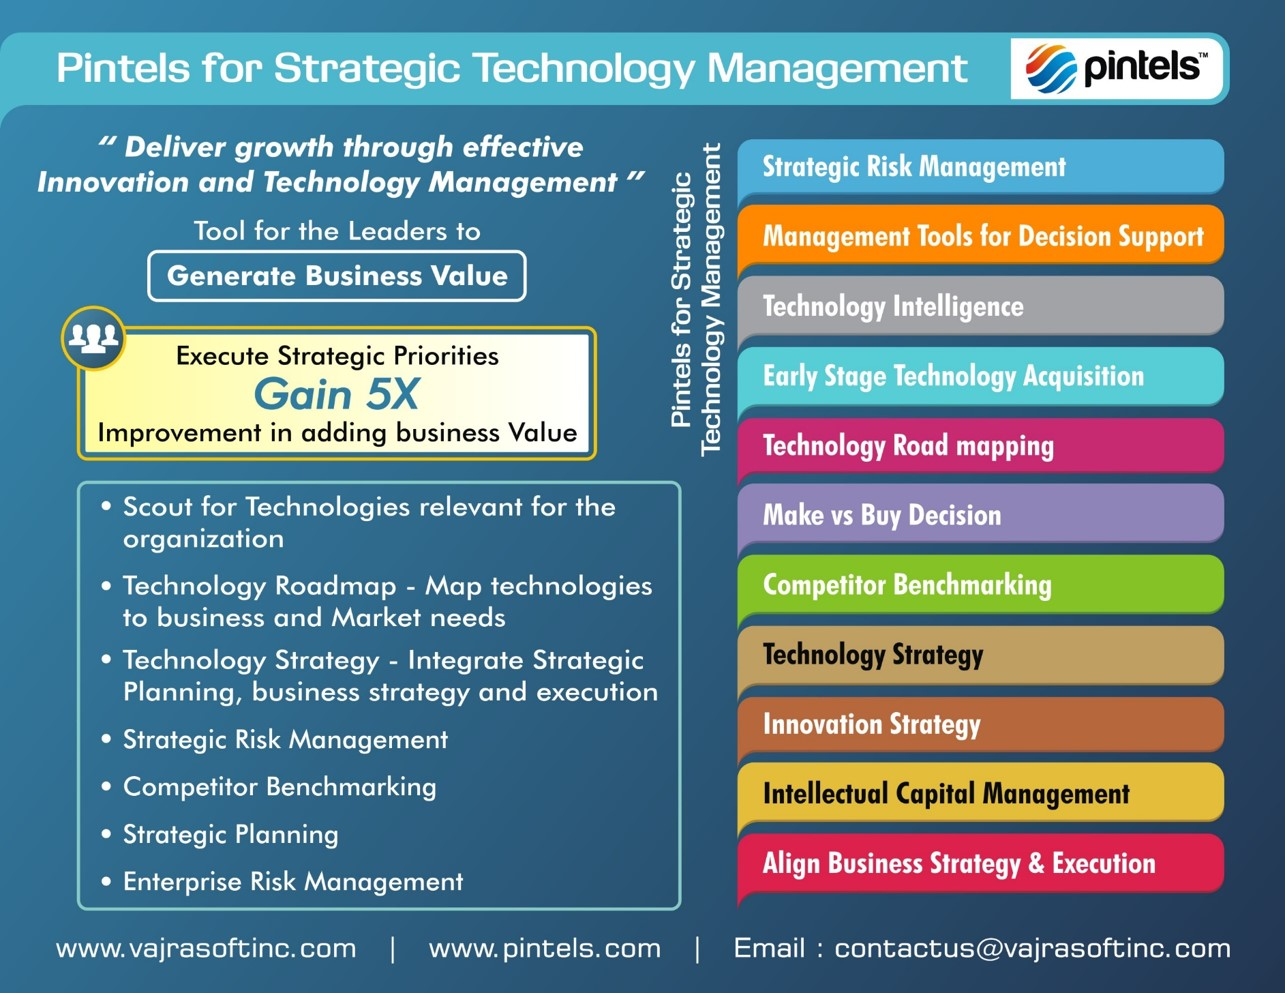 Pintels Strategic Technology Management